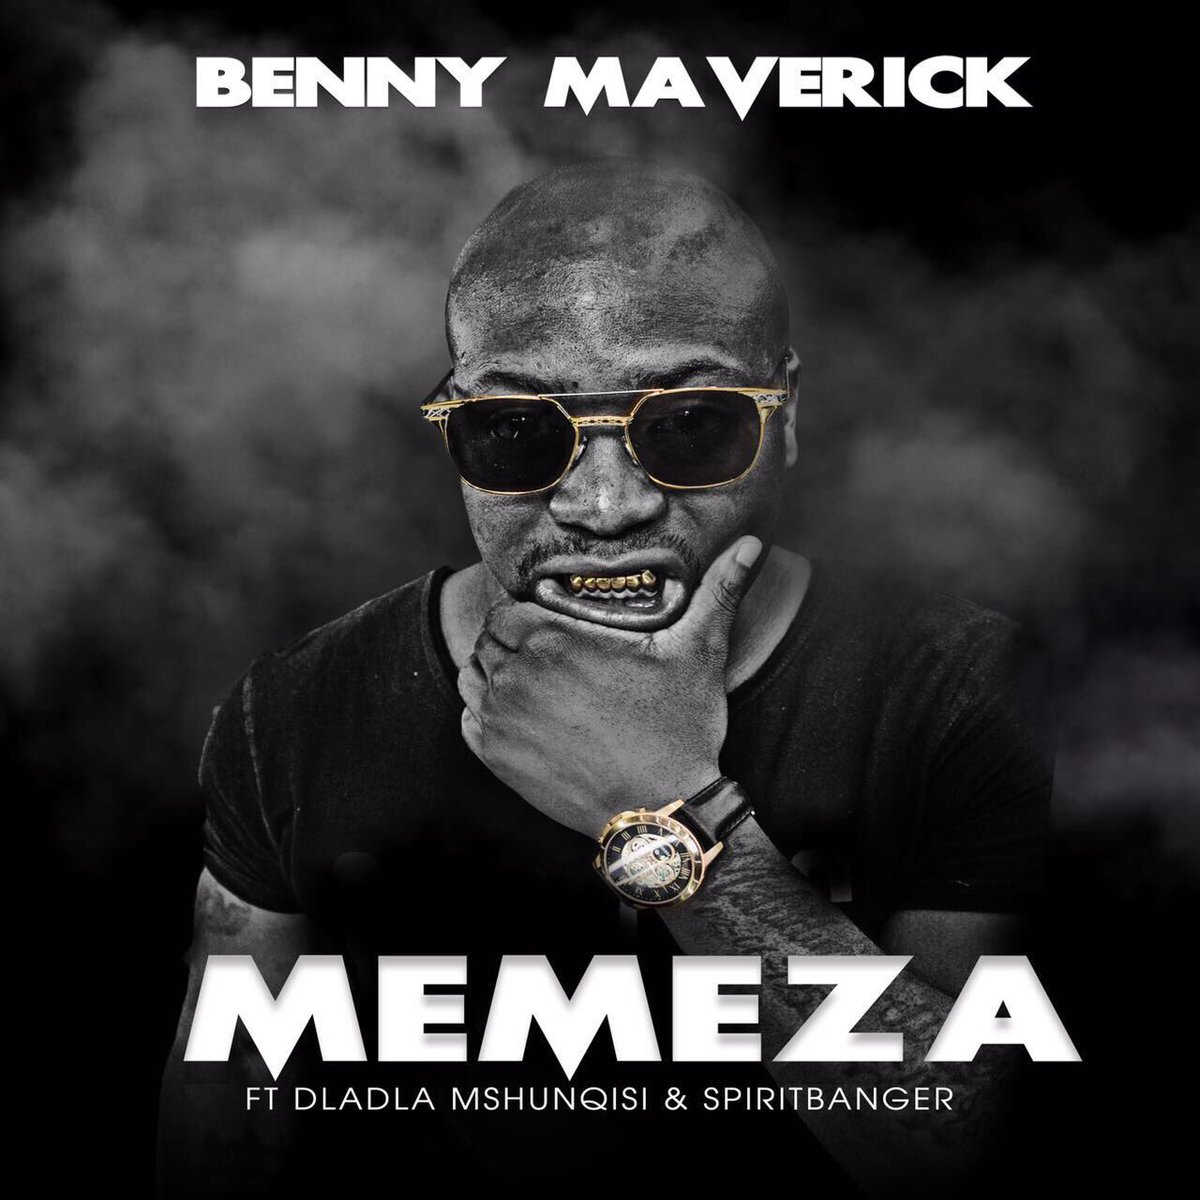 Benny Maverick - Memeza Lyrics